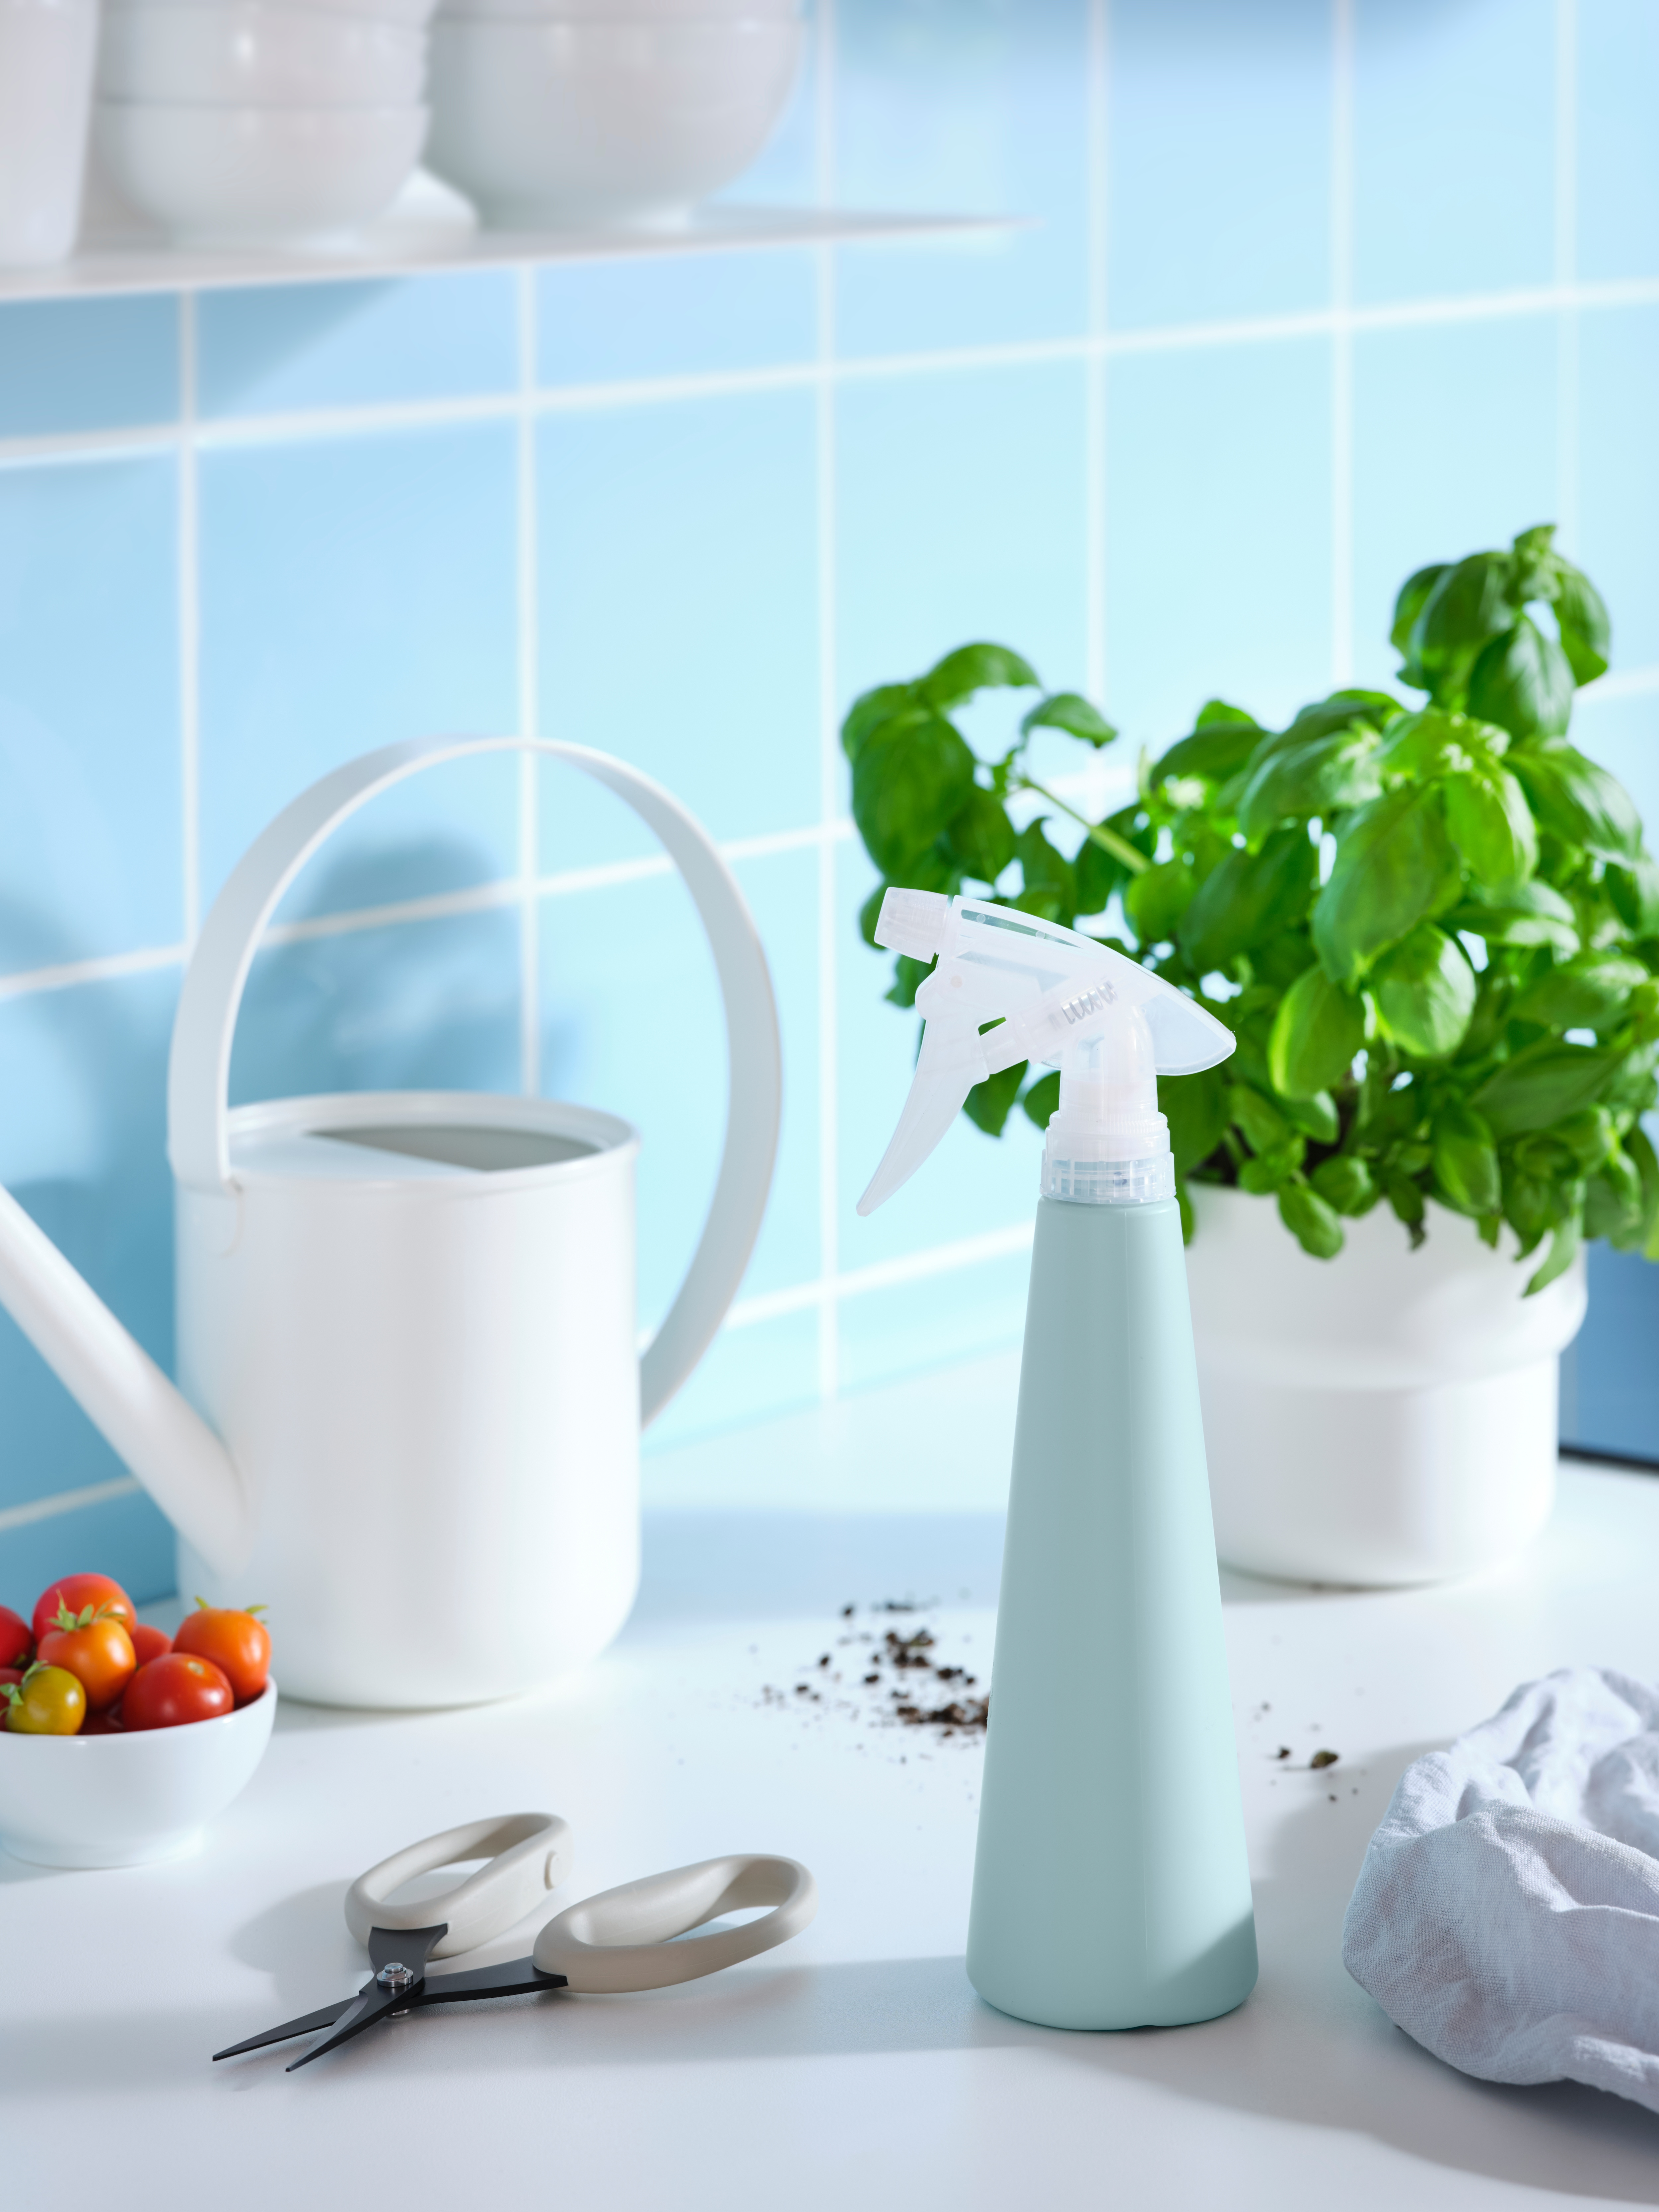 A kitchen top with a watering can, a TOMAT spray bottle, a pair of JACKFRUKT herb scissors, basil and a bowl of tomatoes.